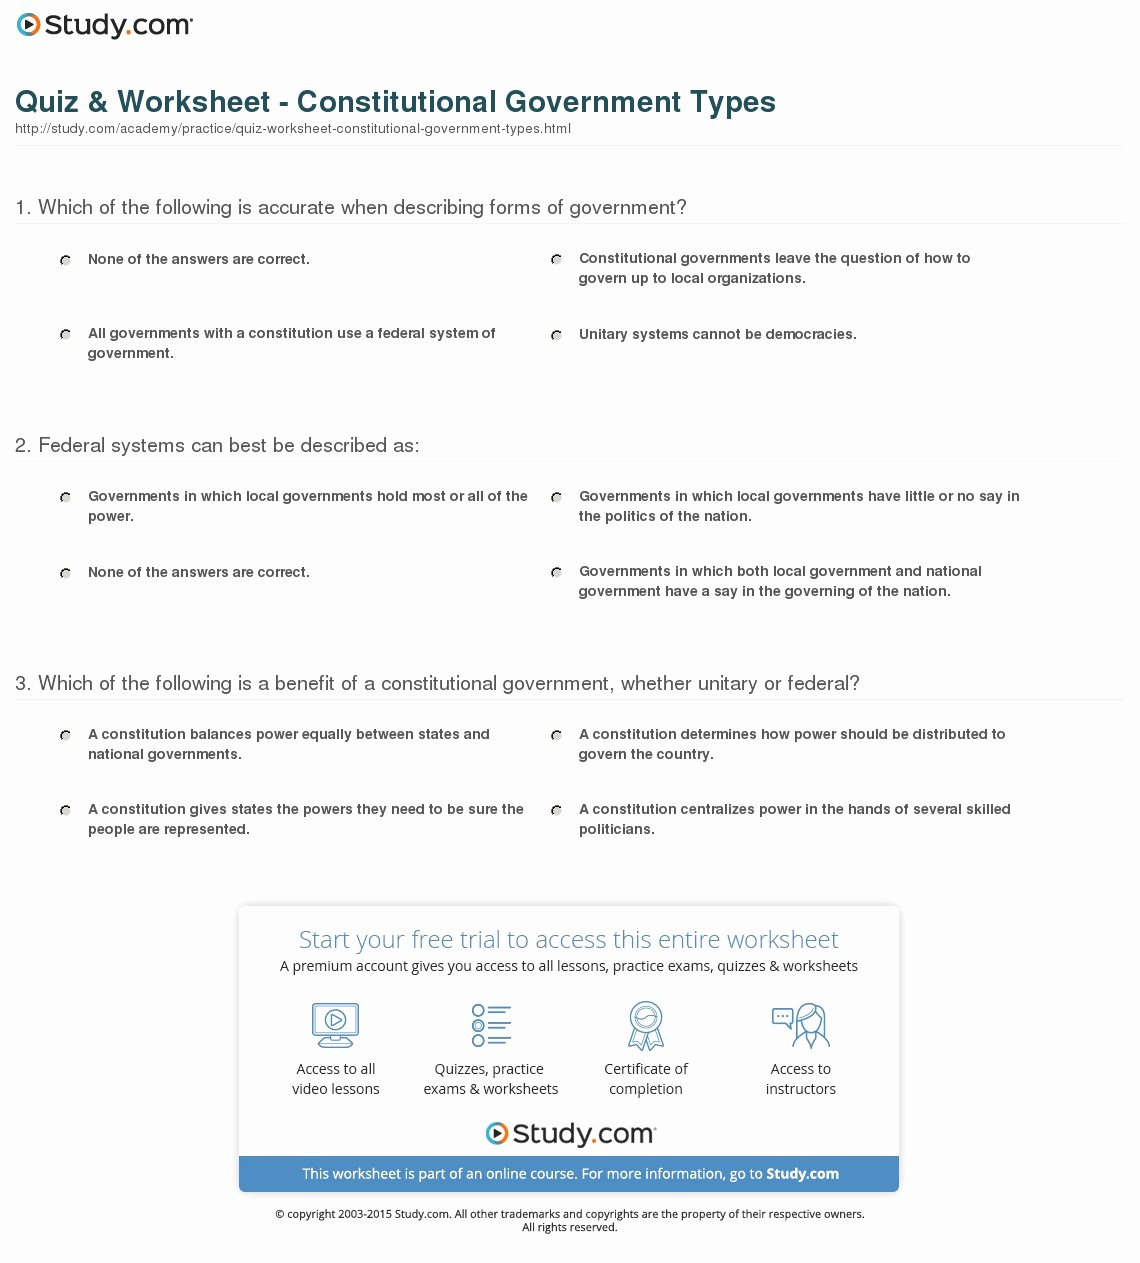 Types Of Government Worksheet Answers Luxury Quiz & Worksheet Constitutional Government Types